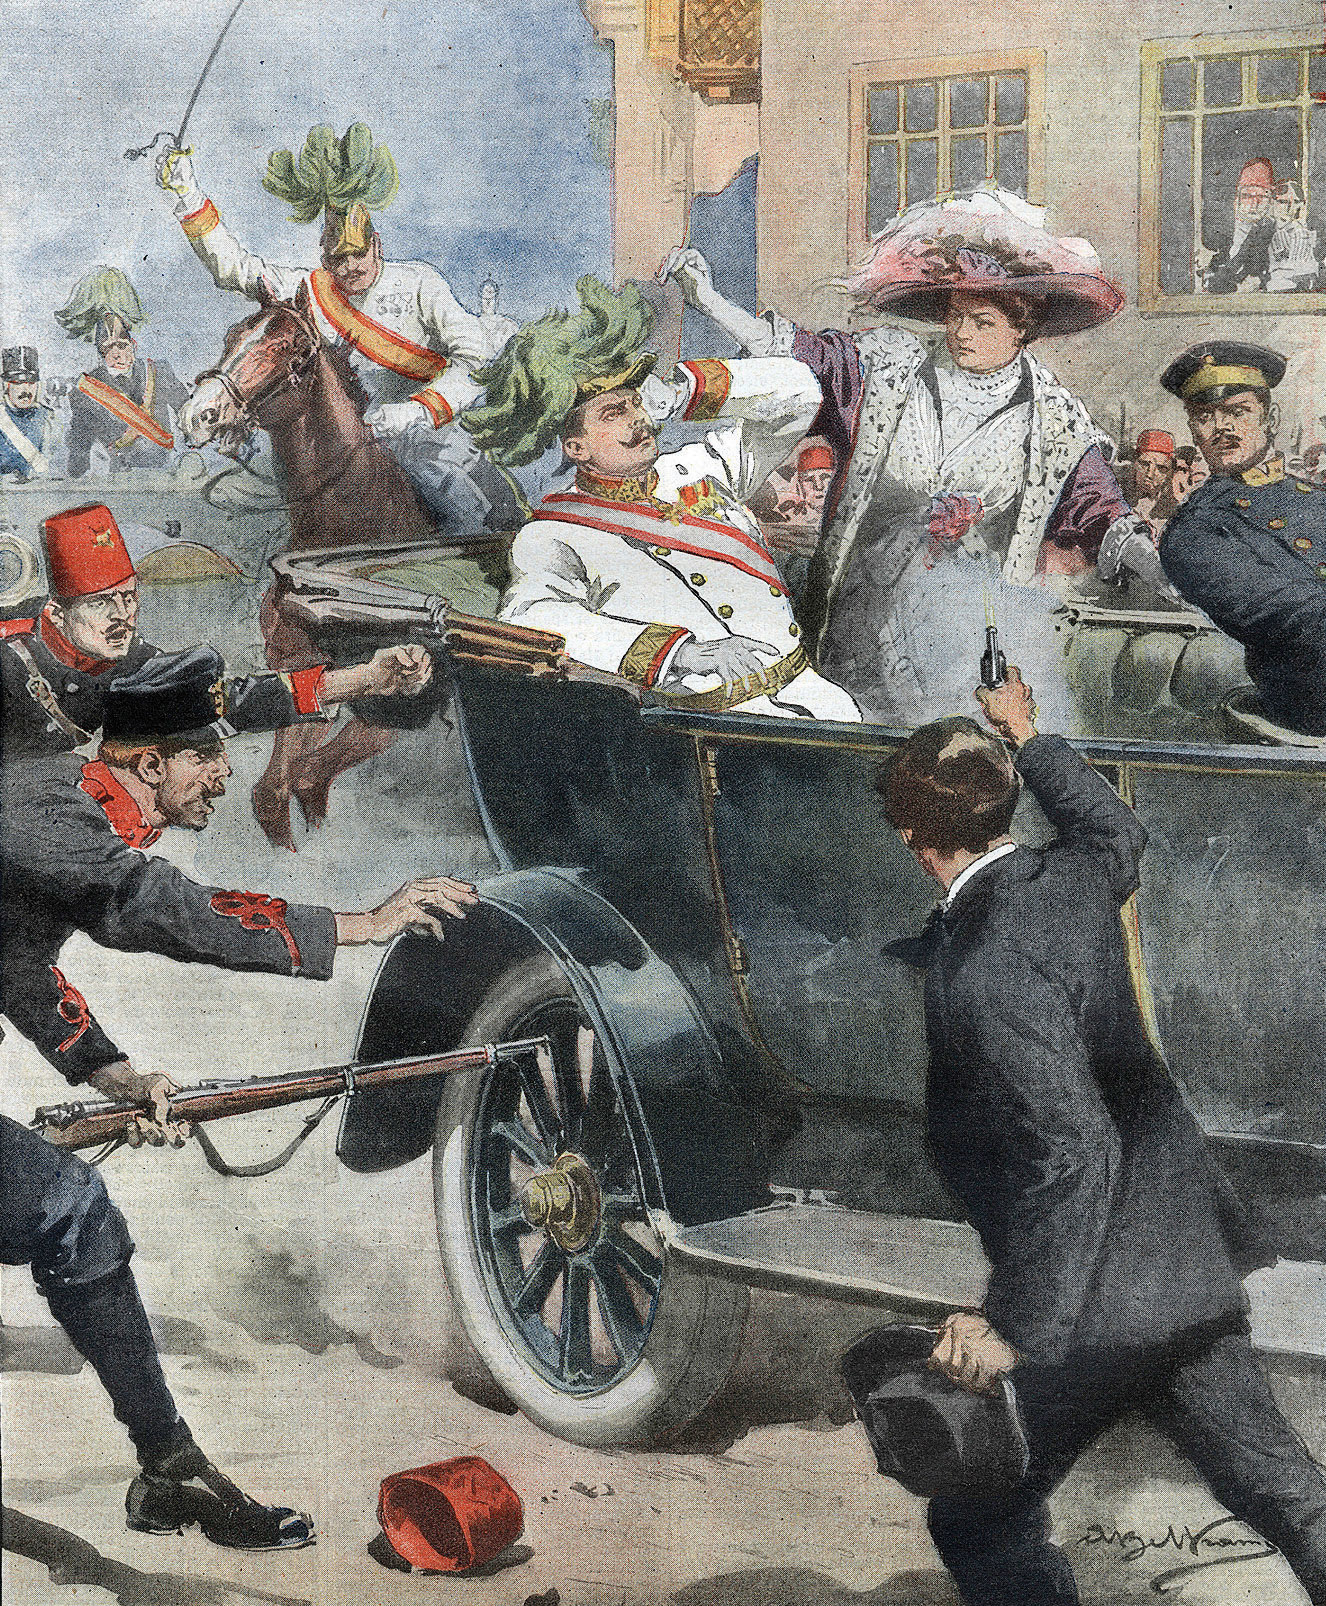 Assassination of Archduke Franz Ferdinand at Sarajevo